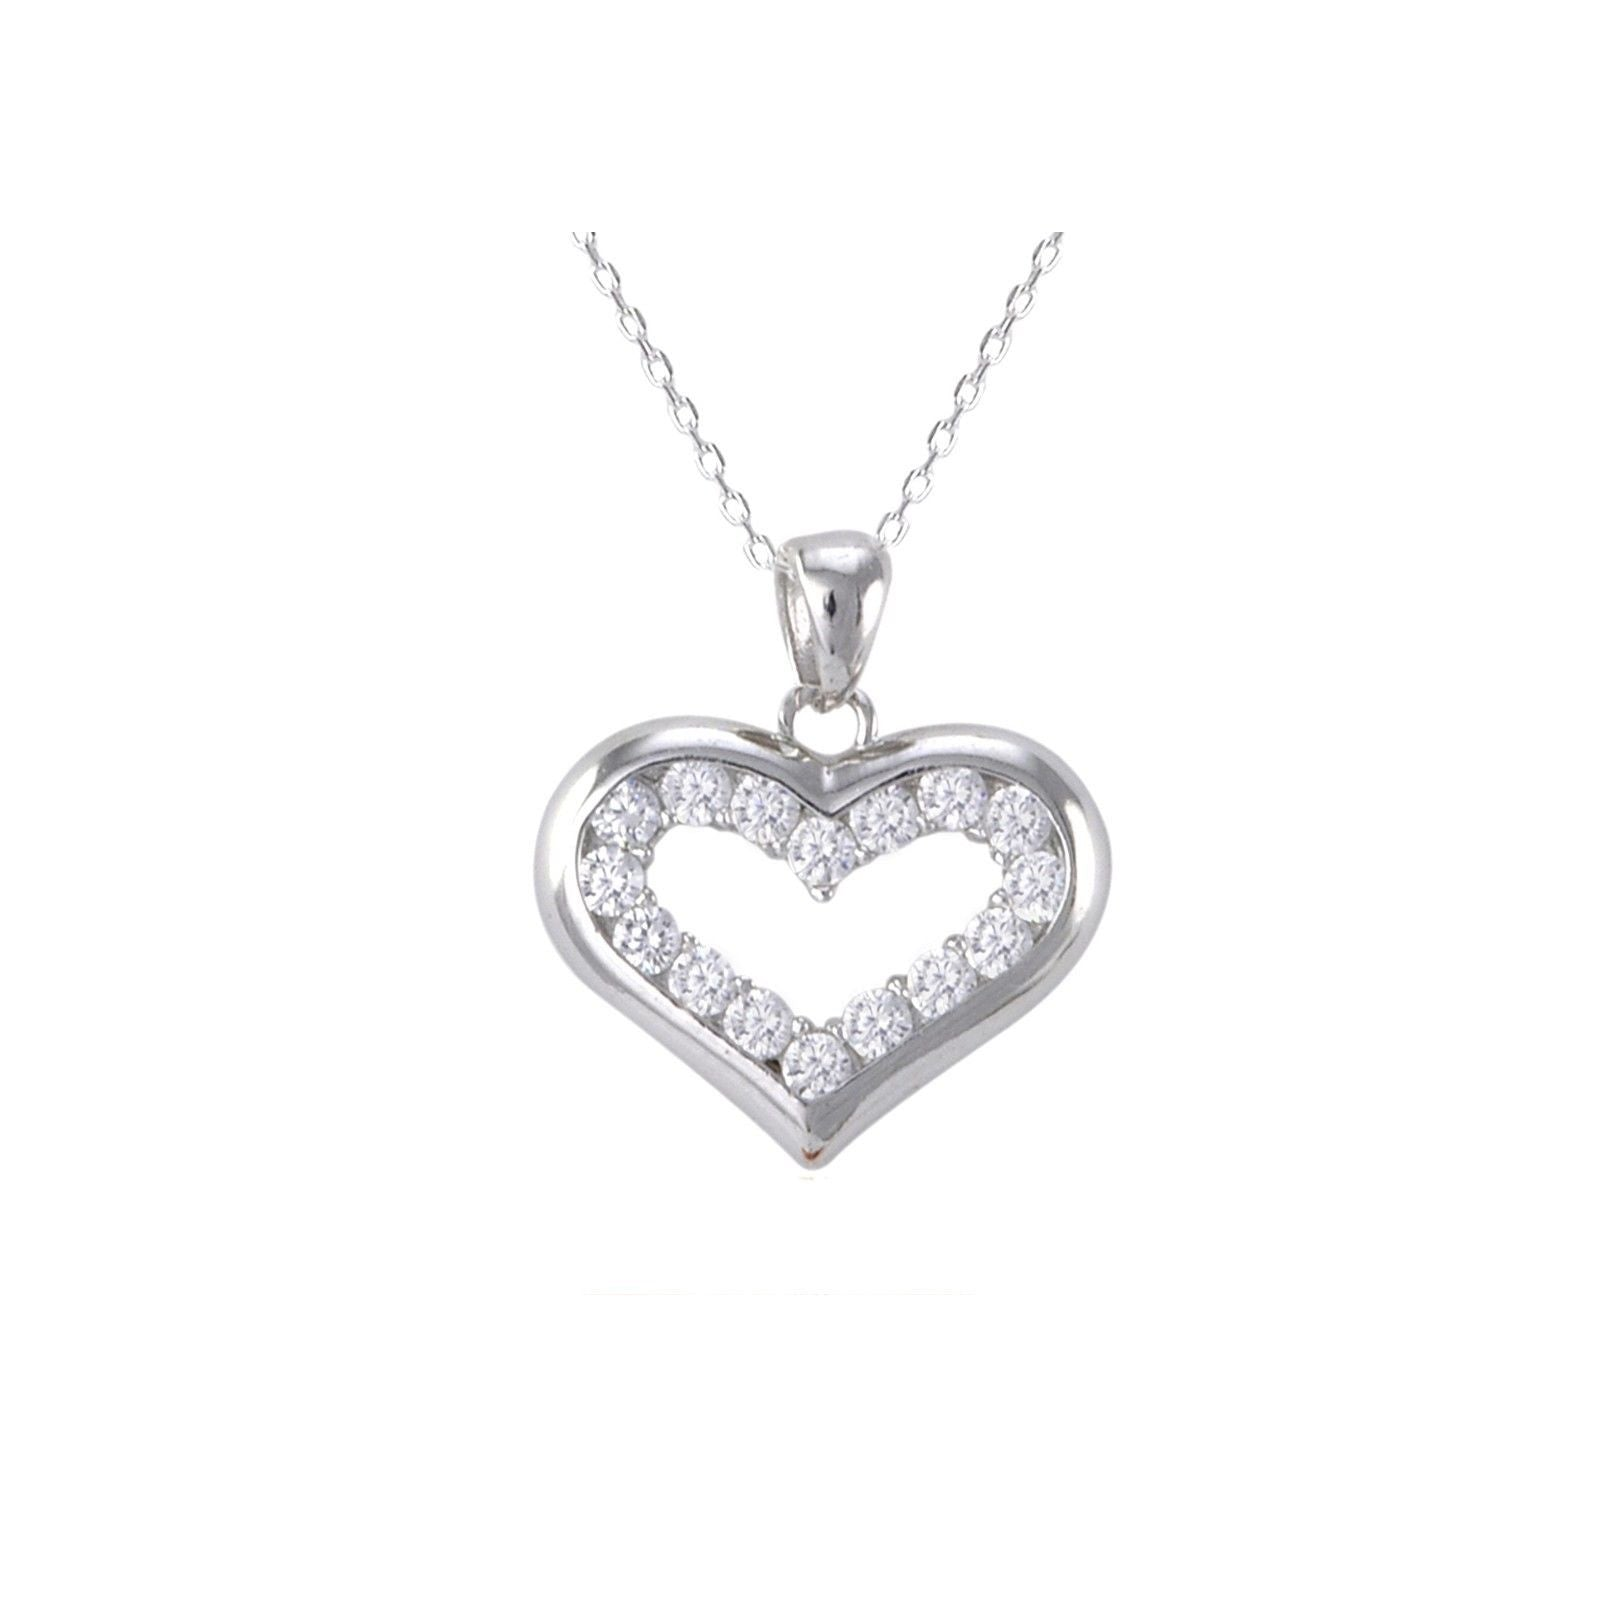 Sterling silver open heart pendant necklace white pave cz cubic sterling silver open heart pendant necklace white pave cz cubic zirconia stones aloadofball Images